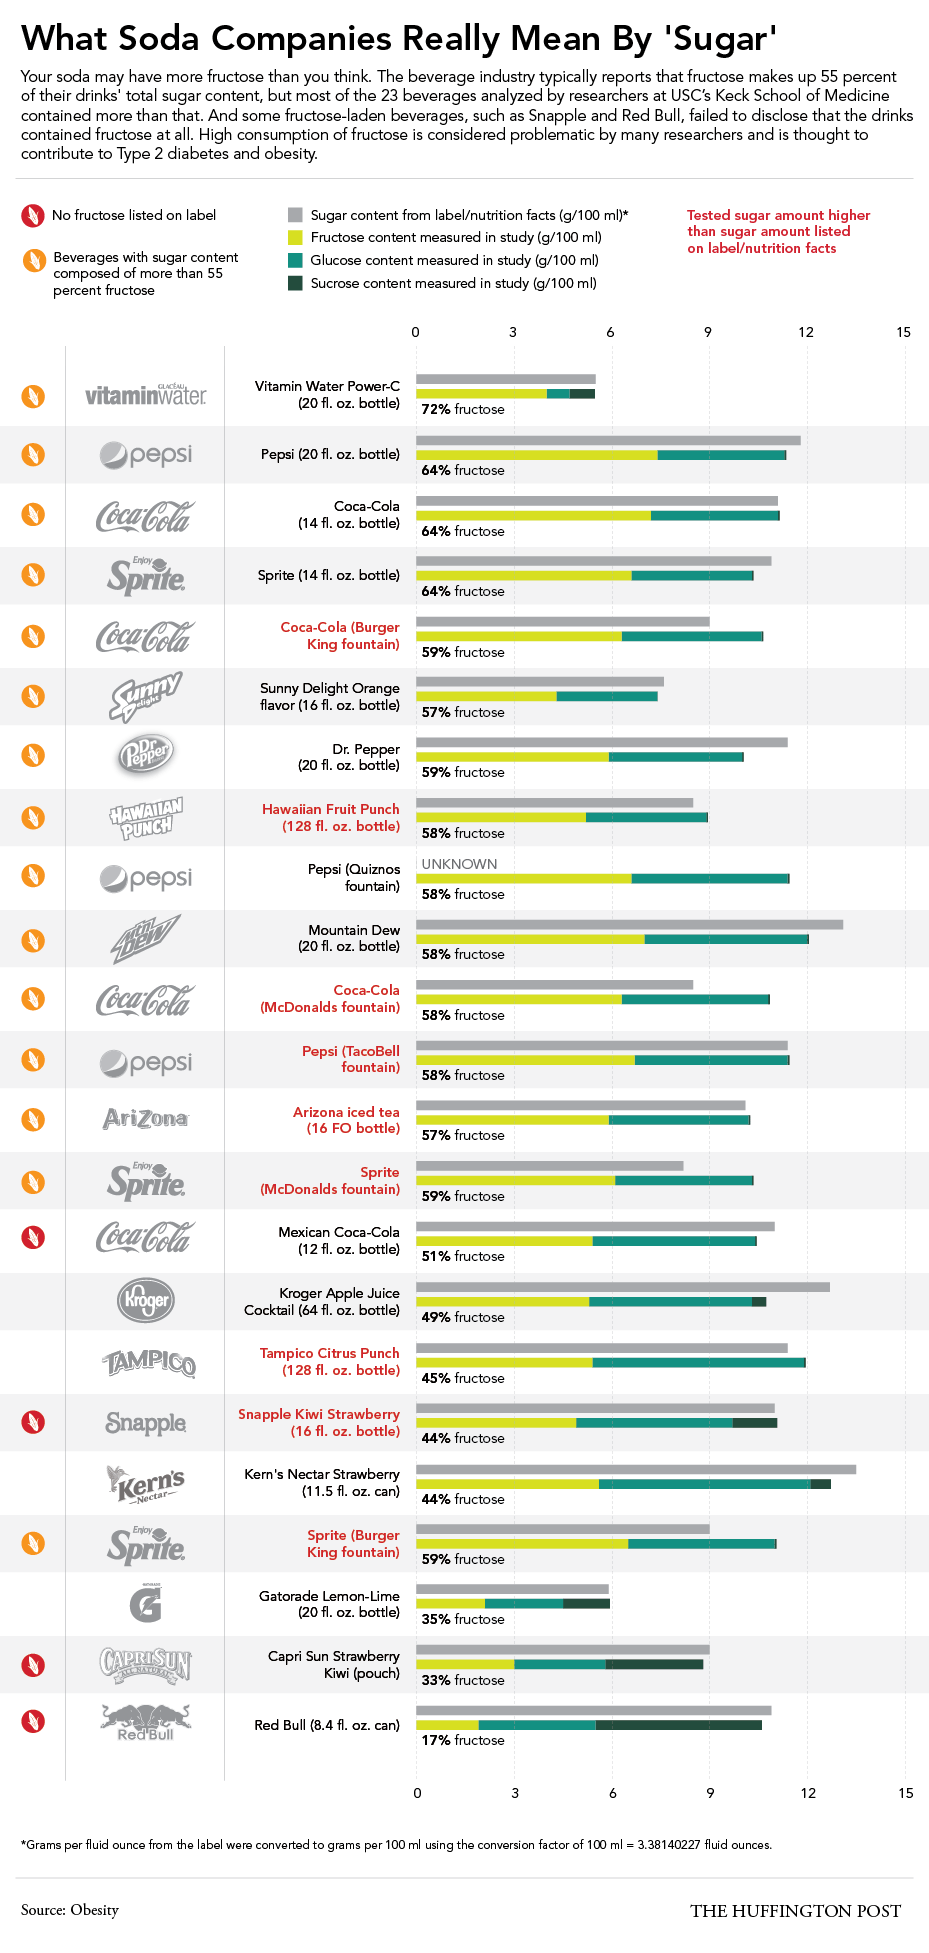 """What Soda Companies Mean By """"Sugar""""? Find Out! Infographic"""